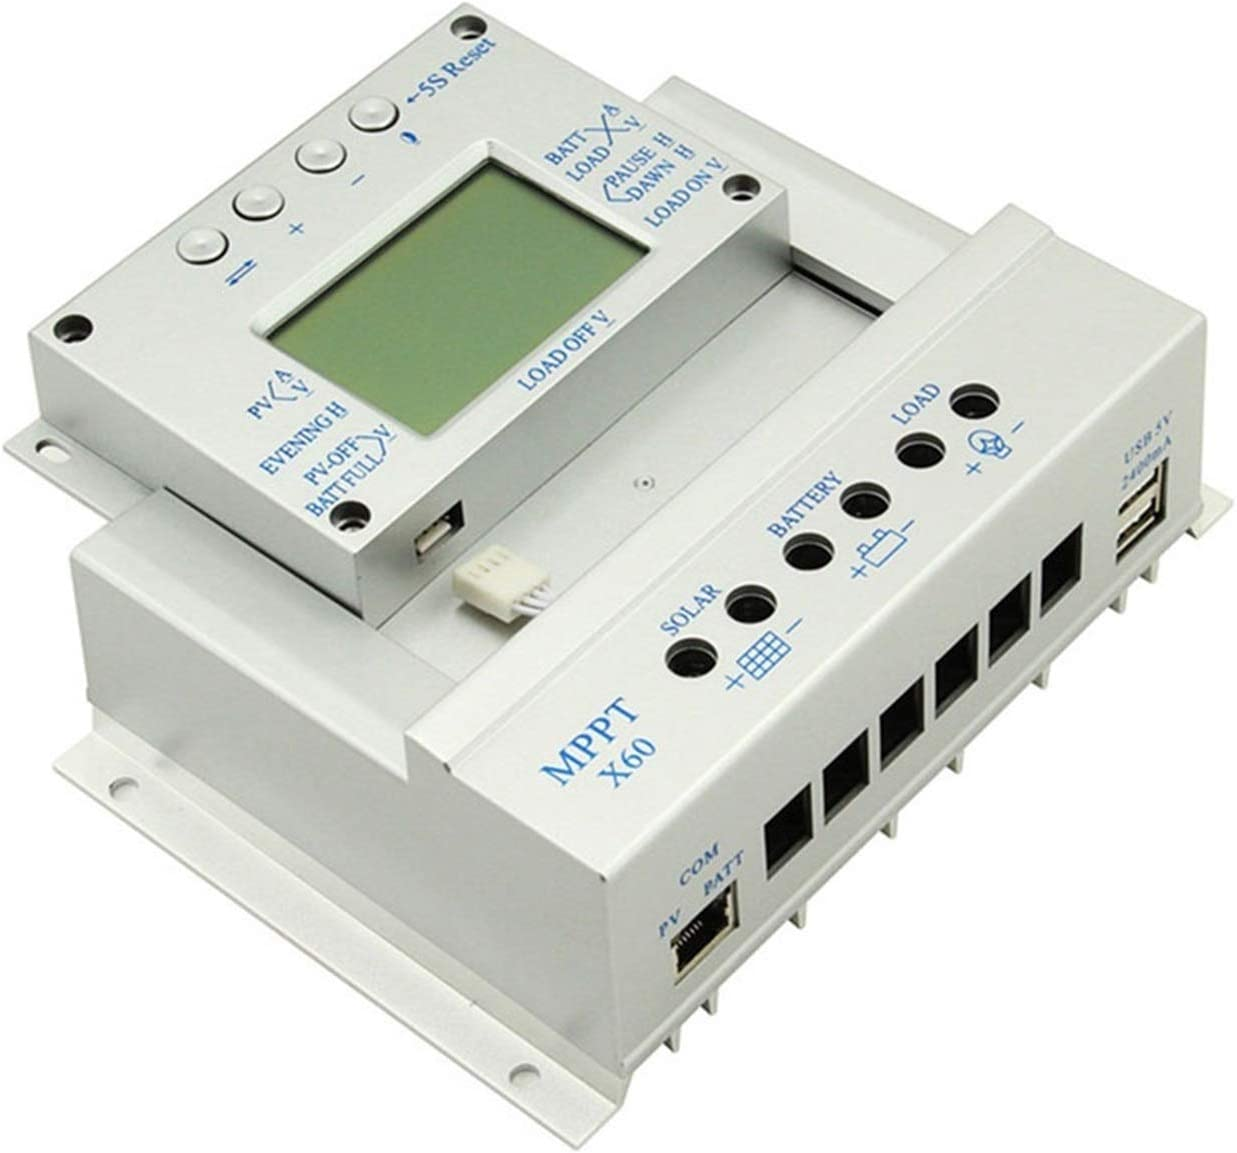 GNY MPPT 80A Limited time sale 60A Solar Charge Controller Japan Maker New 12V L 2m D E Cable 24V